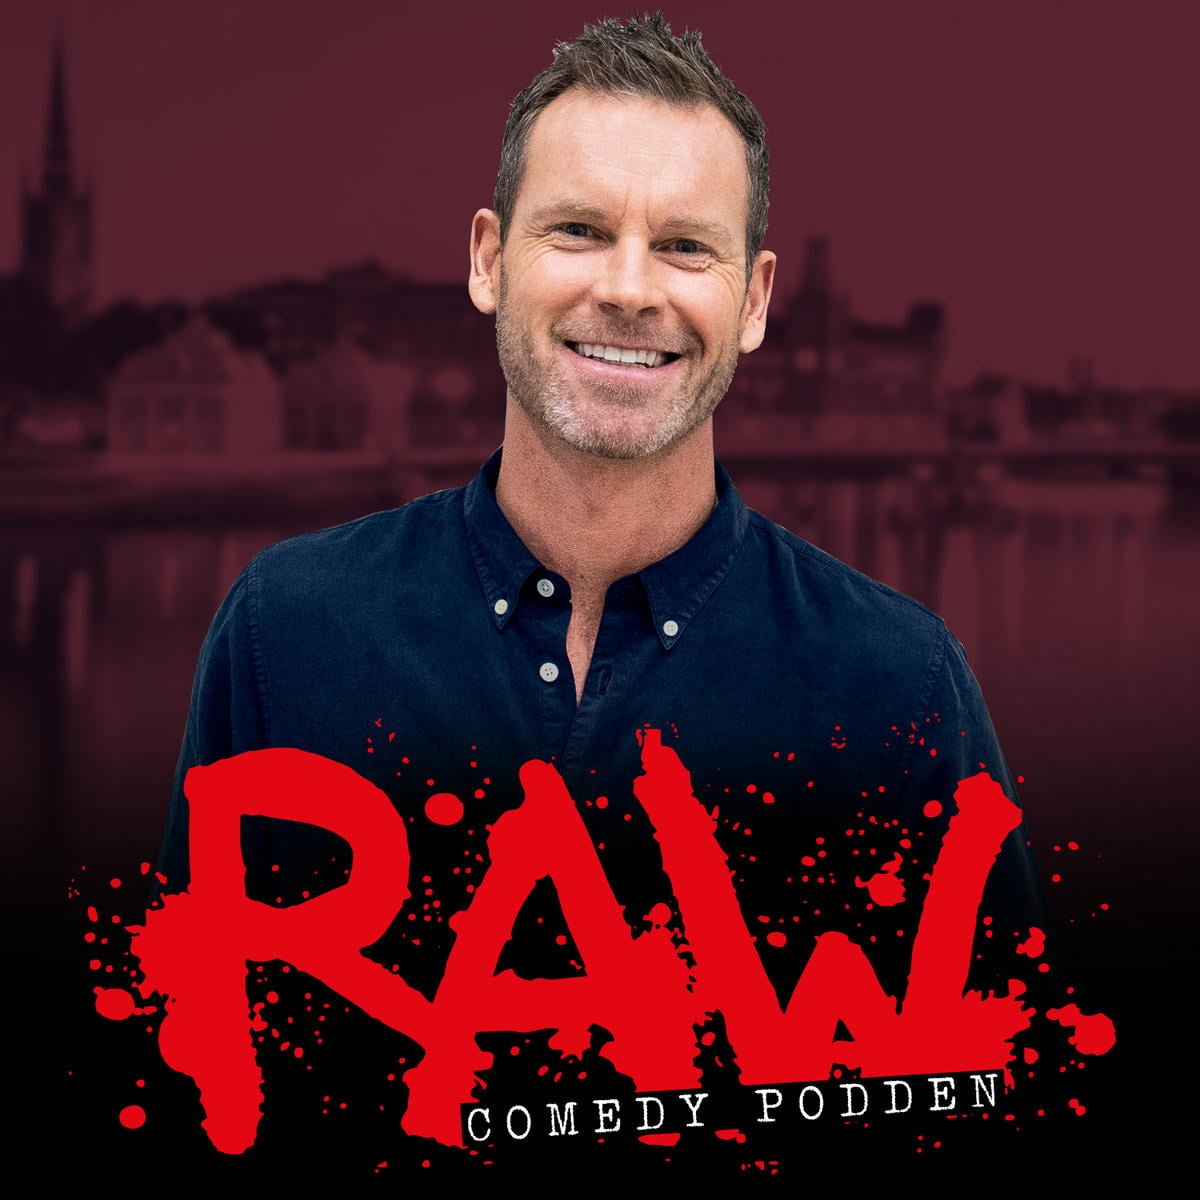 RAW comedy podden